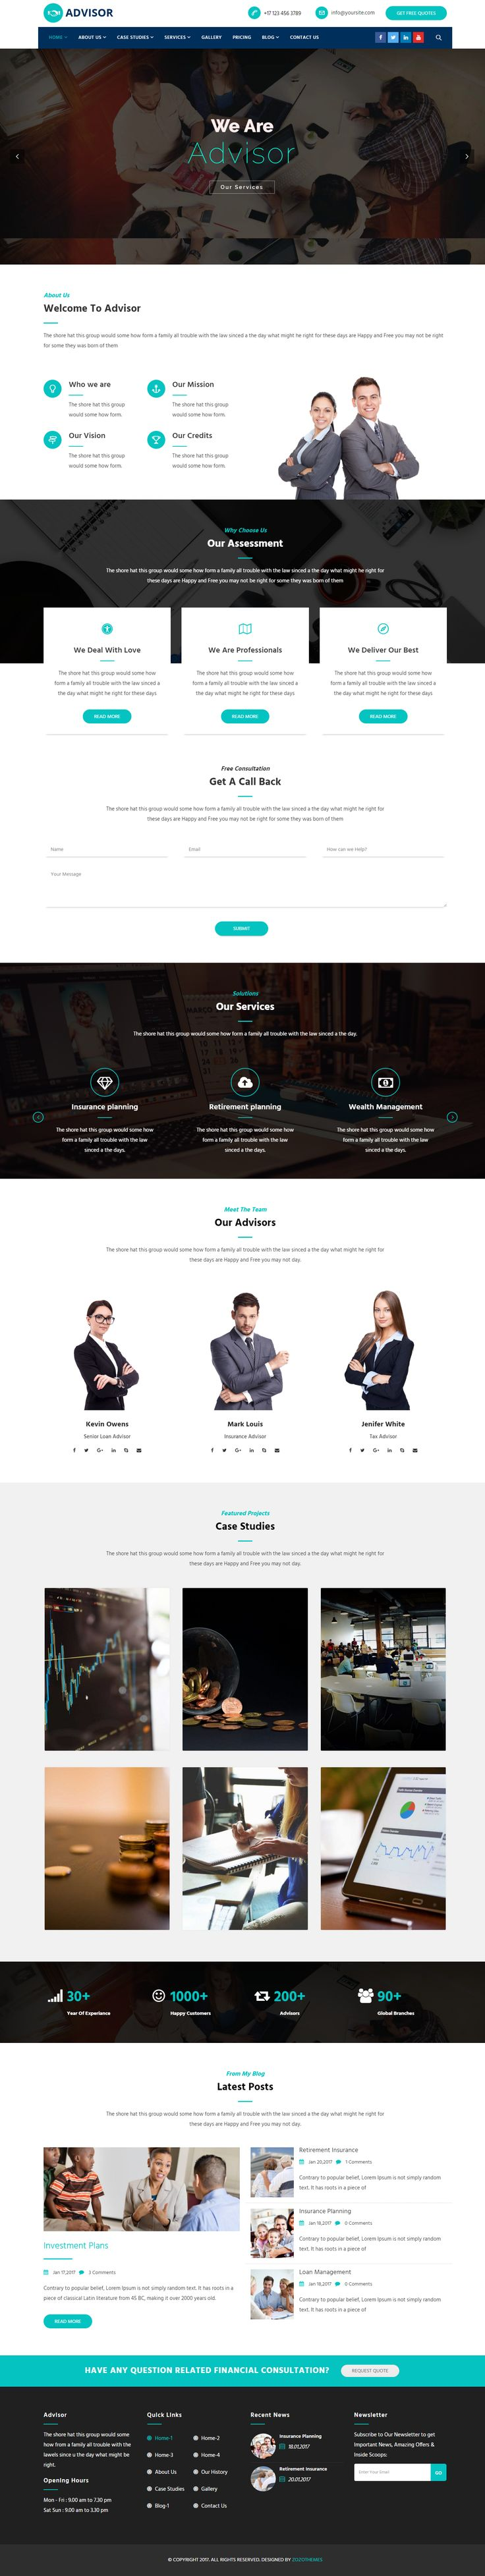 Advisor is a Professional WordPress Theme for Consultancy, Business, Finance. It is just as easy to customize to fit your needs. Design your website just how you like it with Drag & Drop Builder (Visual Composer) which included in Advisor. It is ultimate flexible with loads of nice options and features.